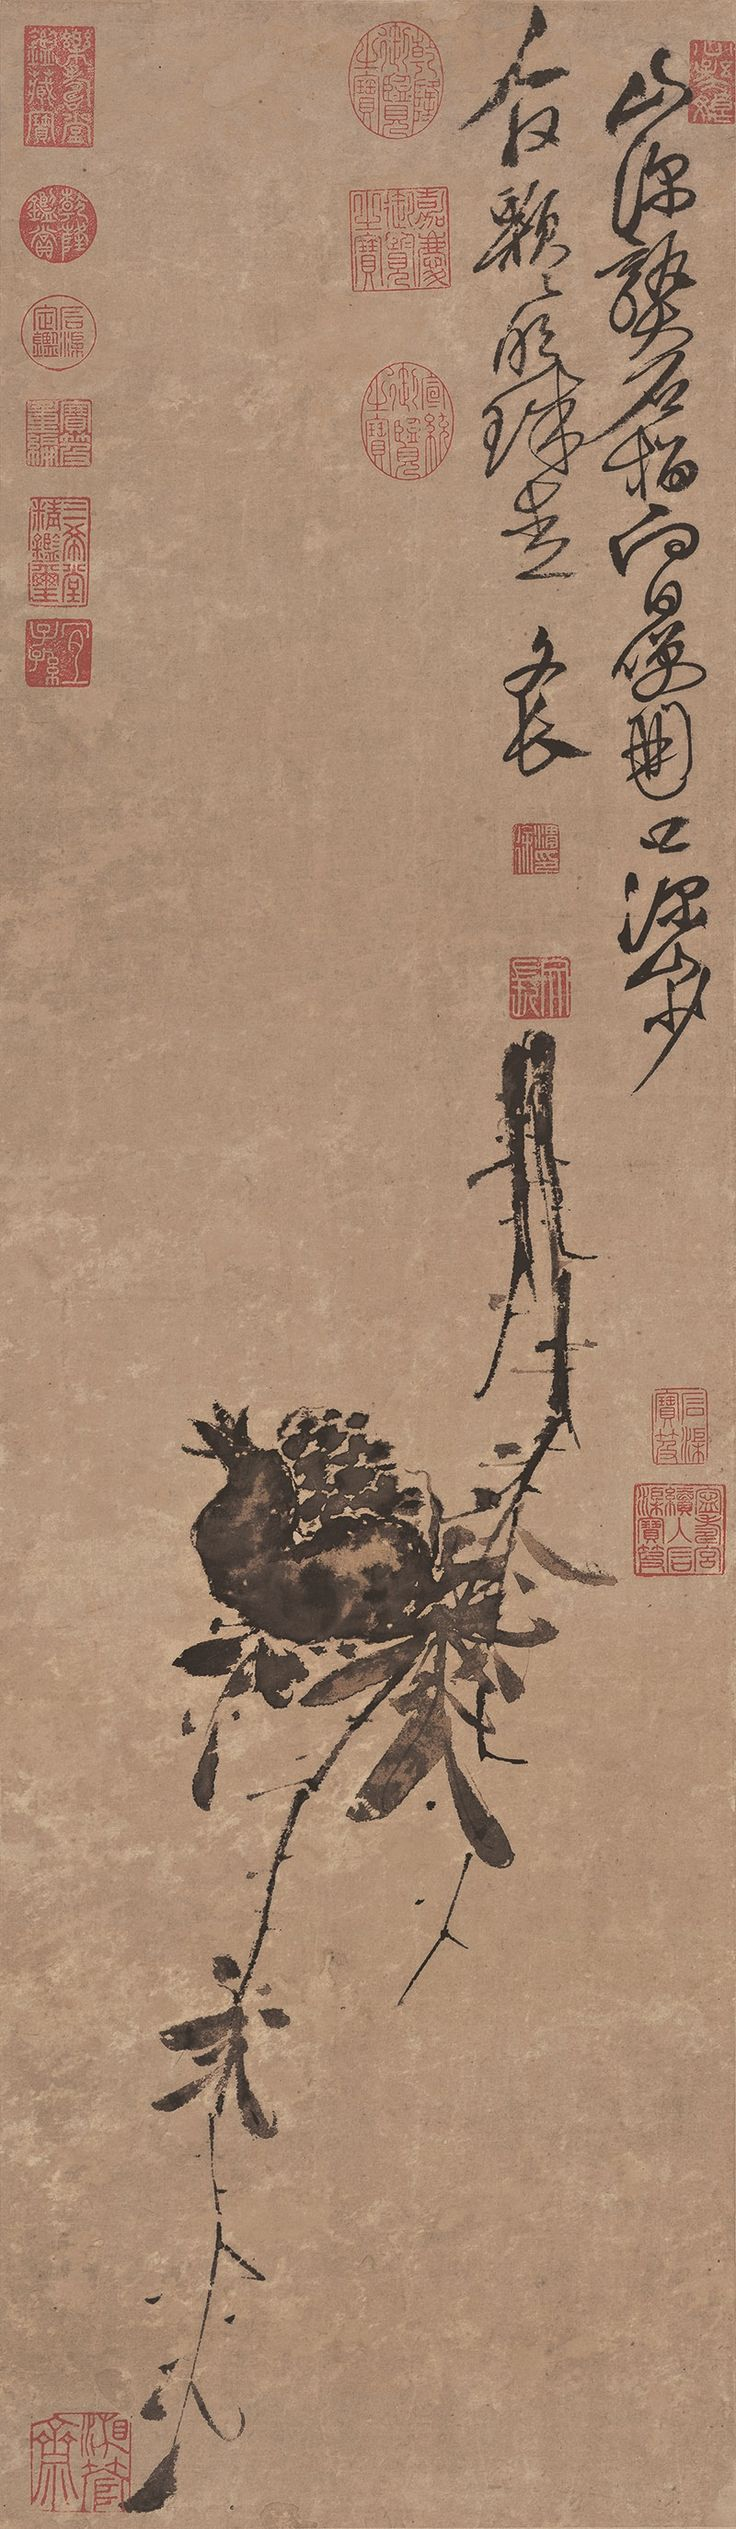 Pomegranate (榴實圖) Xu Wei (徐渭, 1521-1593), Ming Dynasty (1368-1644) Hanging scroll, ink on paper, 91.4 x 26.6 cm, National Palace Museum, Taipei